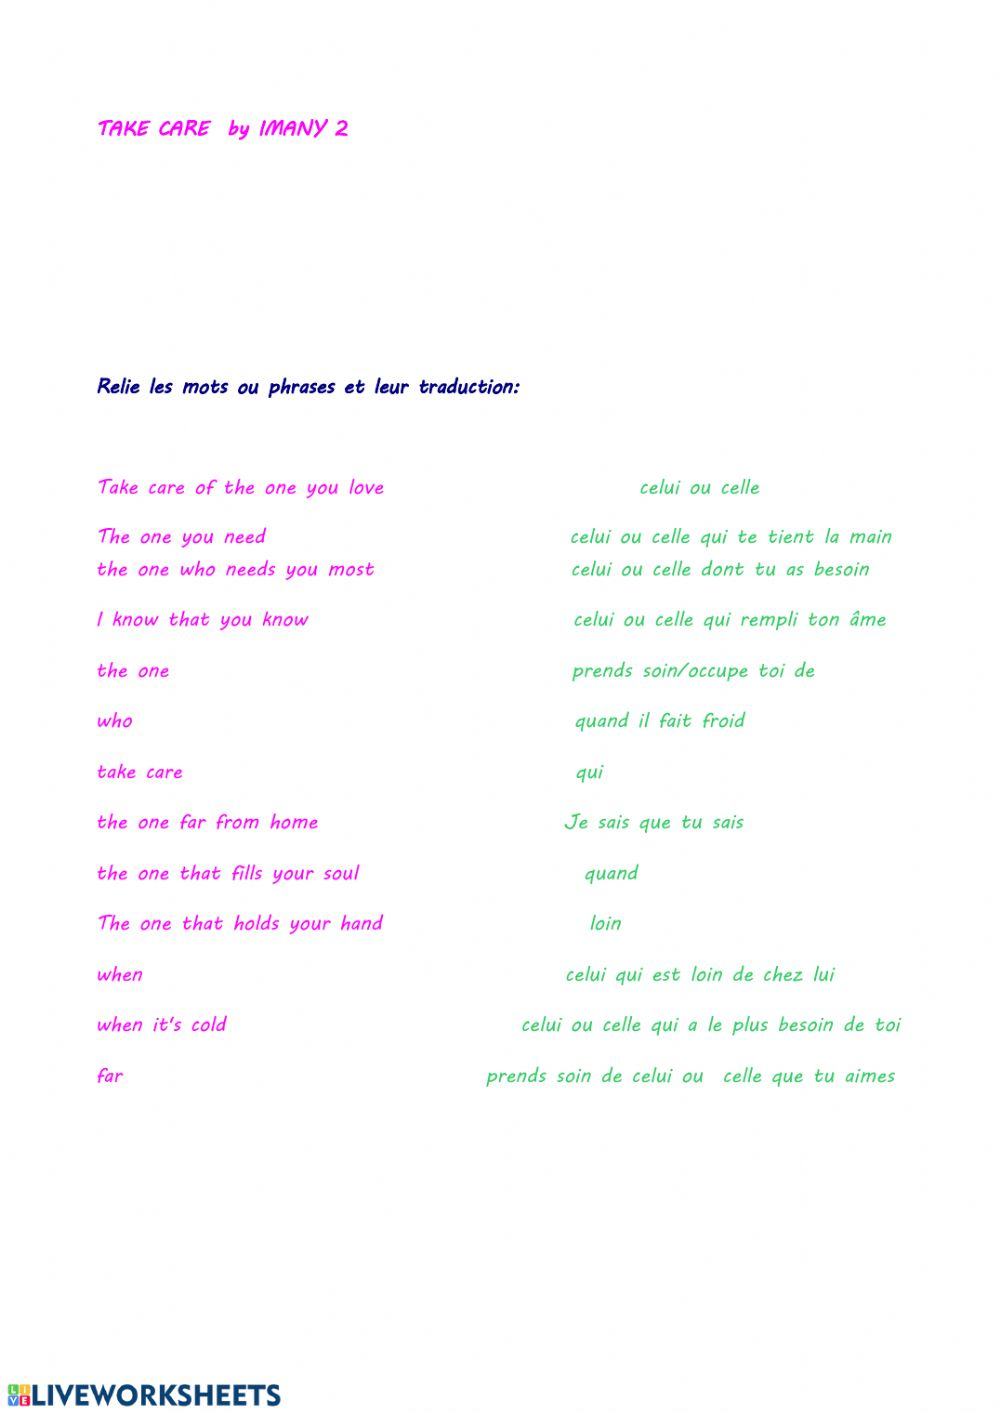 Take care imany 2 - Interactive worksheet